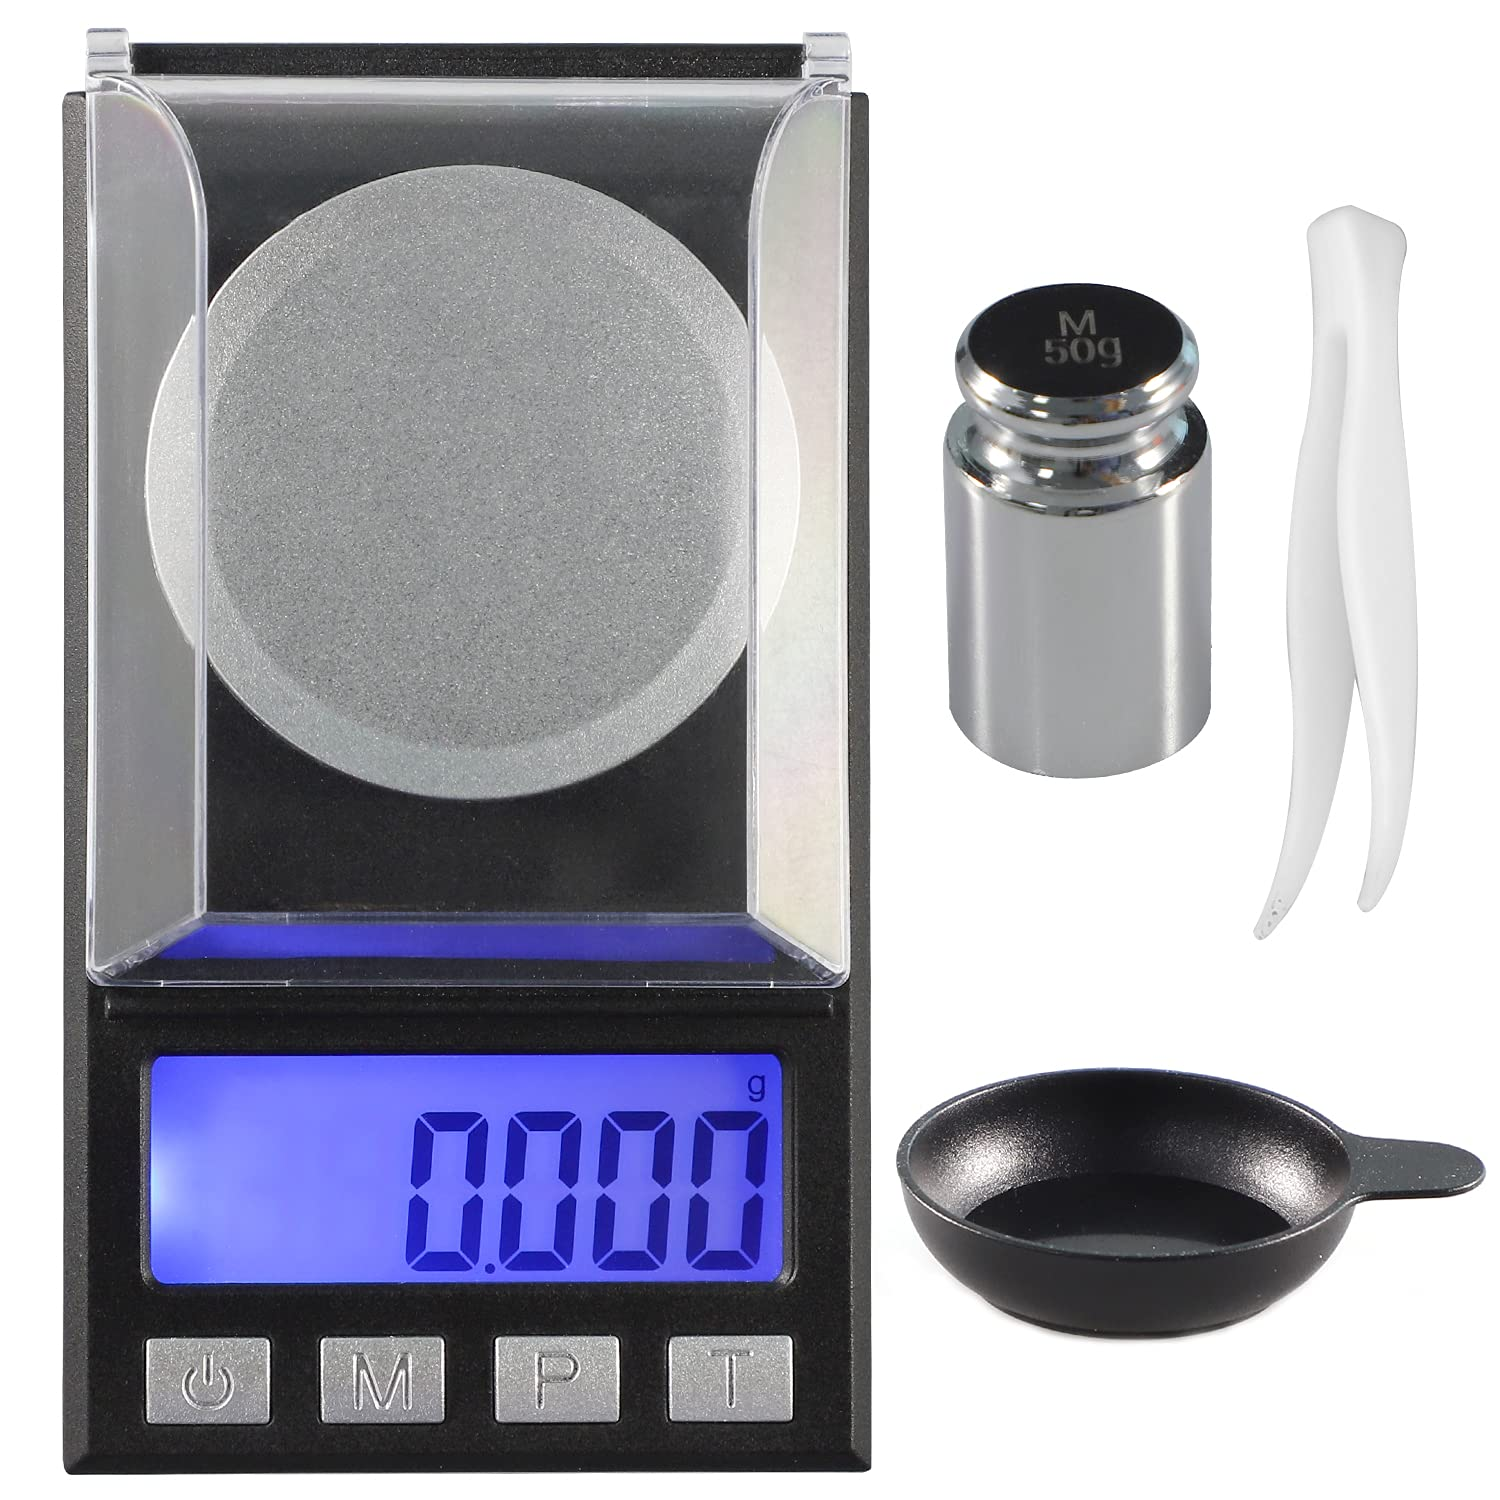 JHSCALE Portable Jewelry Scale with LCD Backlit, Digital Milligram Scale 50g/0.001g,Mini Pocket Scale with 8 Units,Digital Weight Grams for Jewelry, Gem, Diamonds, Powder,Pills,Batteries Included : Office Products